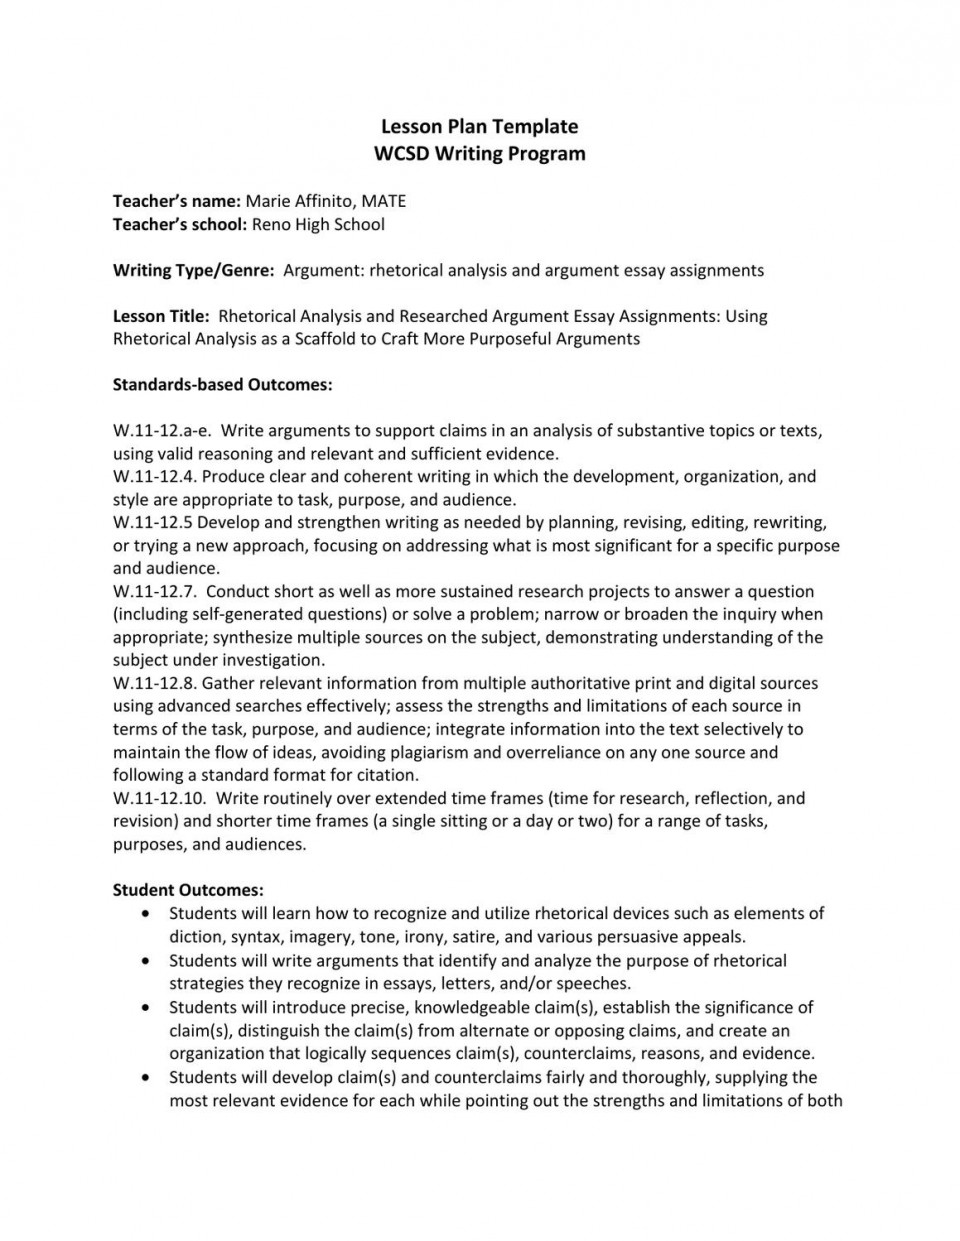 002 Essay Example Page 1 Why Do Authors Use Rhetorical Devices In Frightening Essays Quizlet Brainly 960